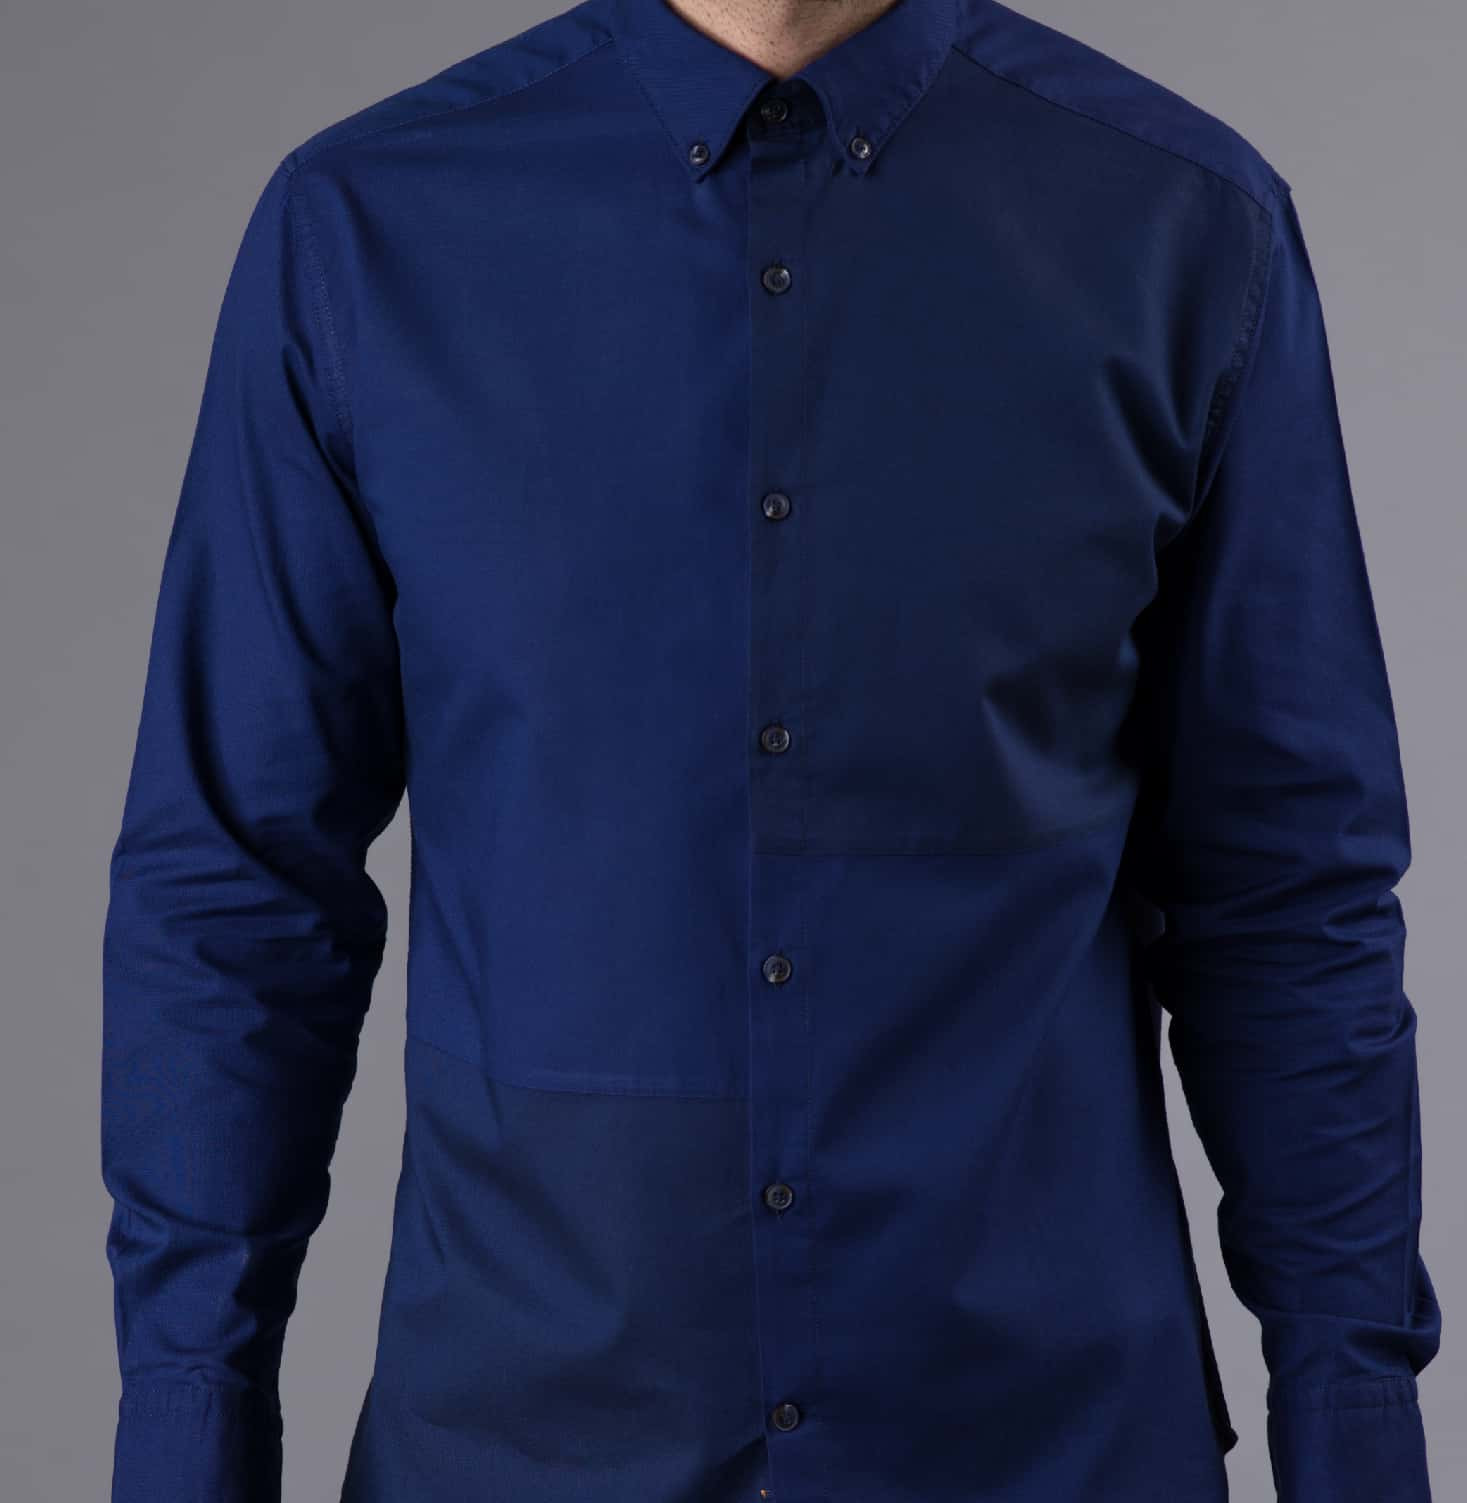 27 Compartments Branded Designer Shirts for Men